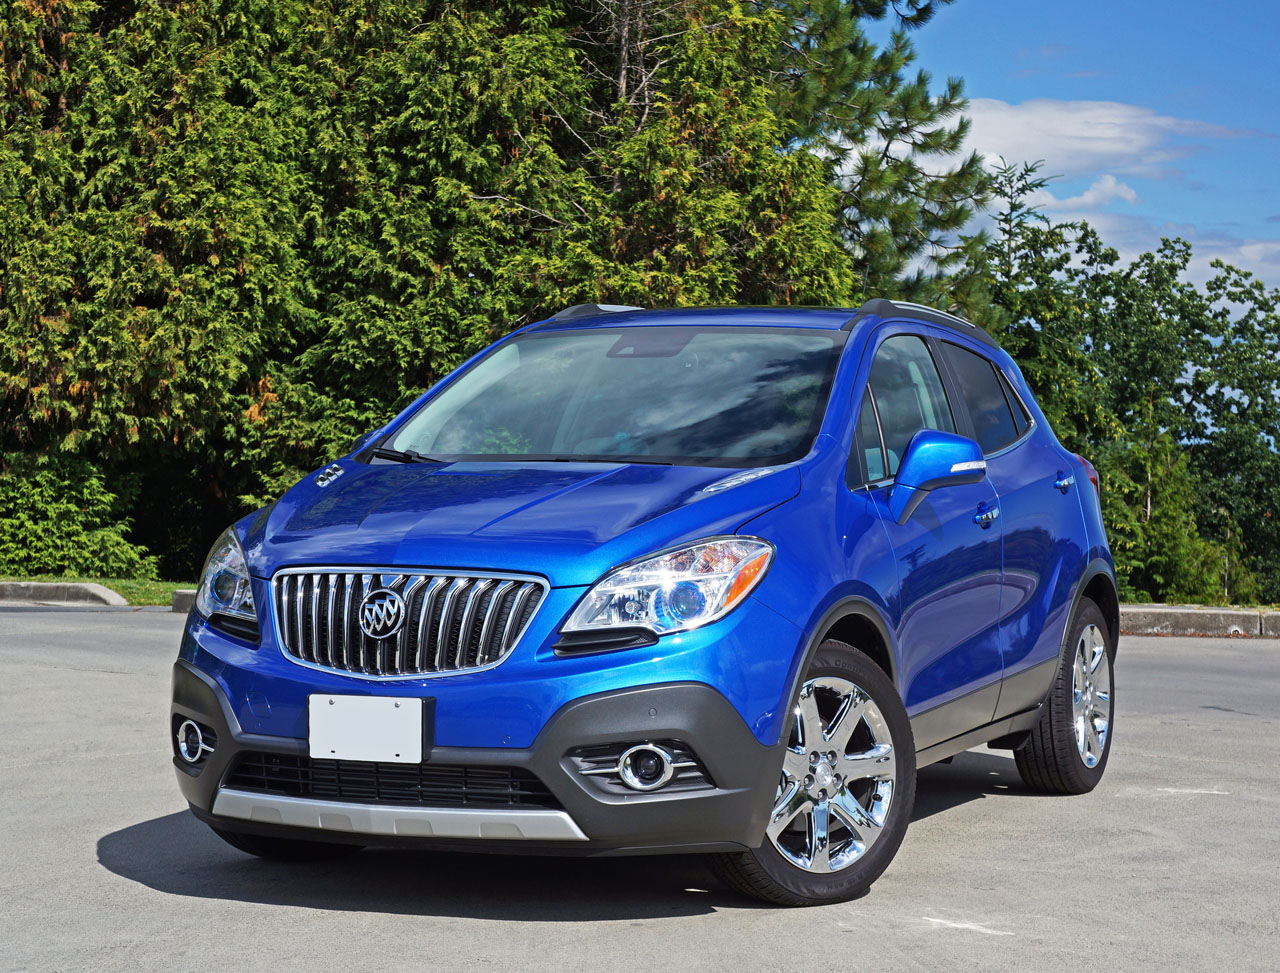 2016 buick encore premium fwd road test review carcostcanada. Black Bedroom Furniture Sets. Home Design Ideas